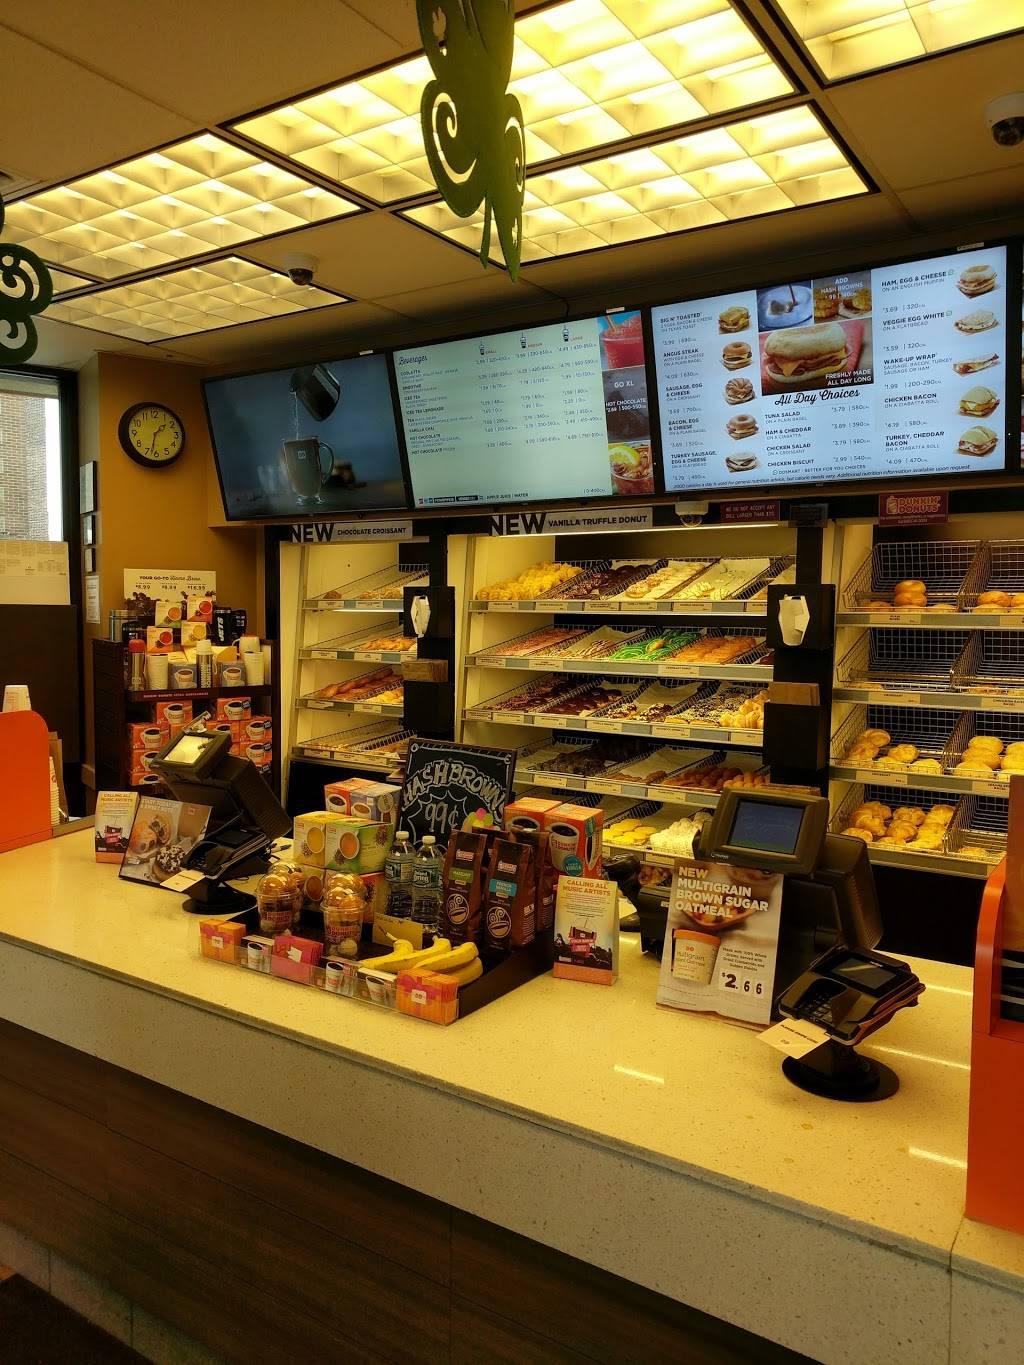 Dunkin Donuts   cafe   507 Summit Ave, Jersey City, NJ 07306, USA   2019632233 OR +1 201-963-2233